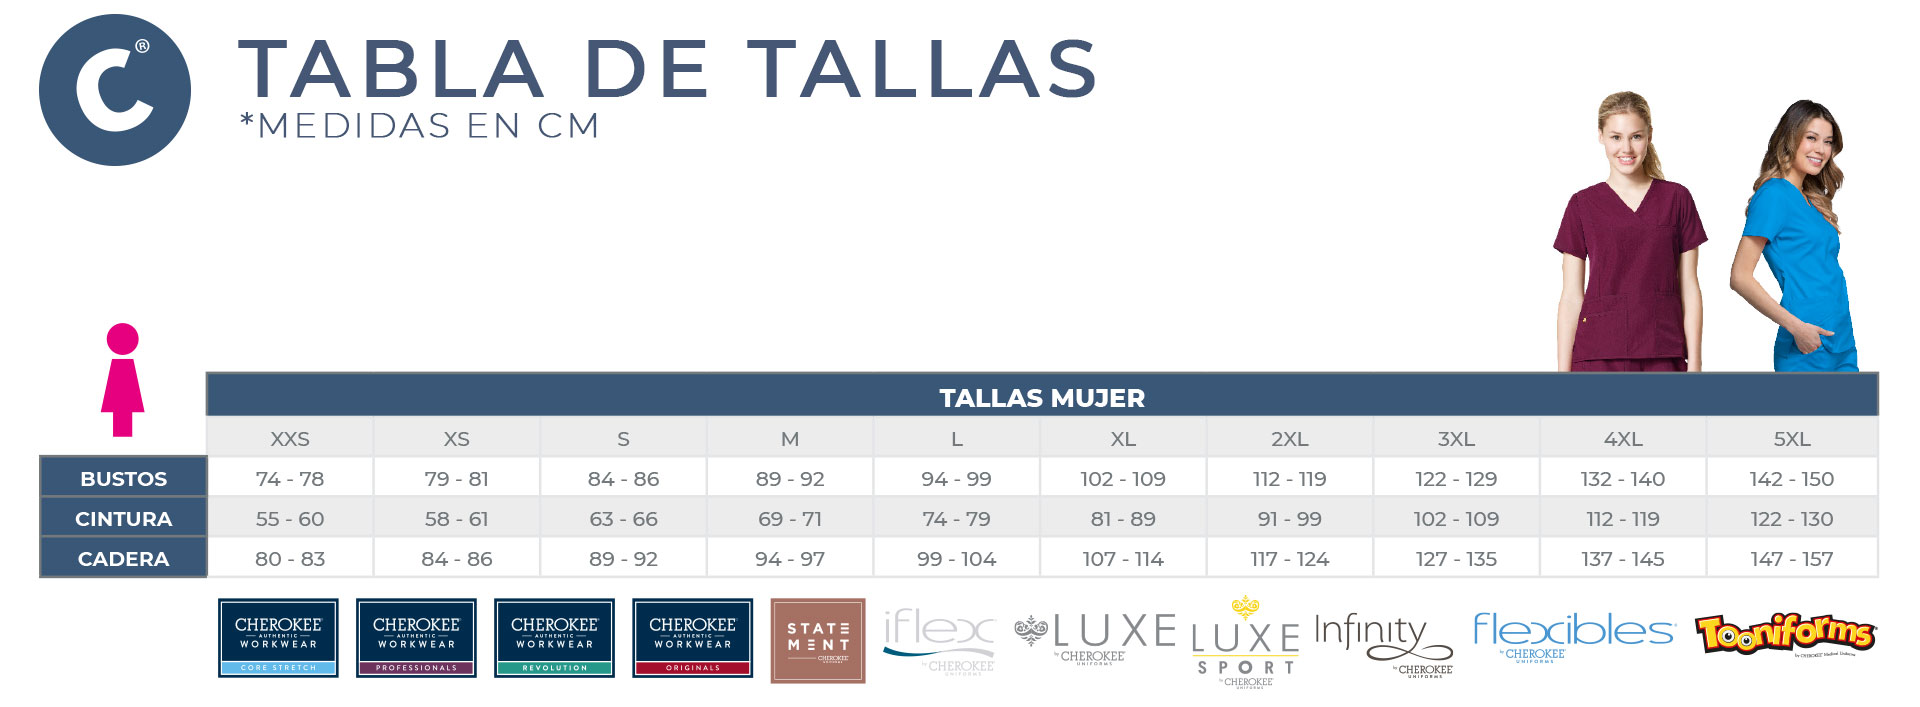 Tabla de tallas uniformes (1)